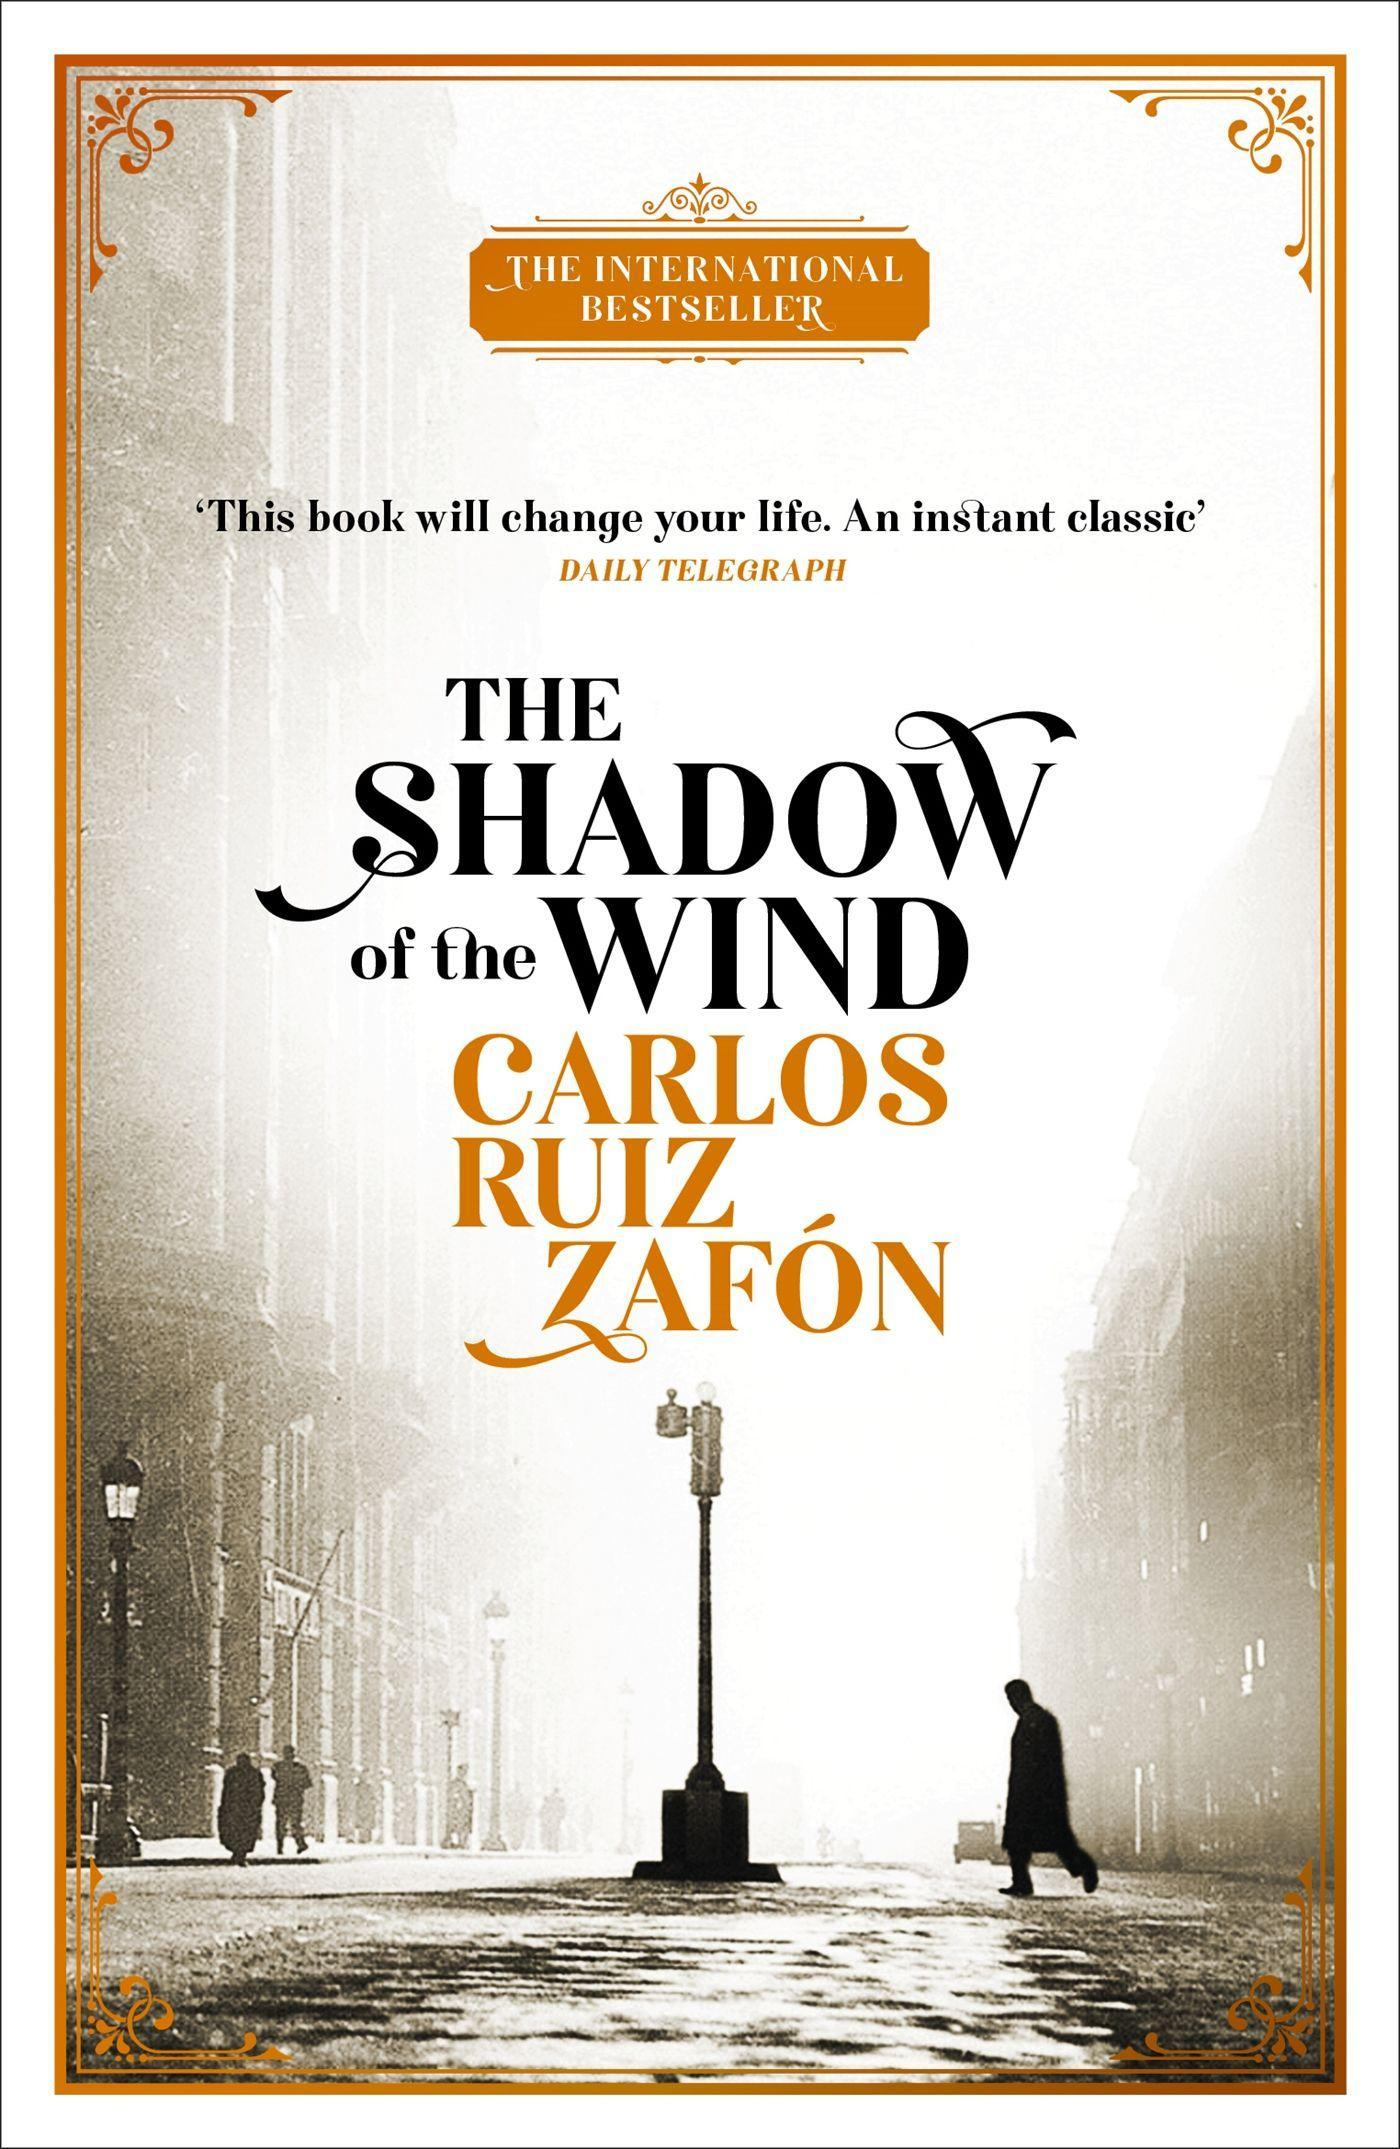 The Shadow of the Wind  Carlos Ruiz Zafón  Taschenbuch  Englisch  2018